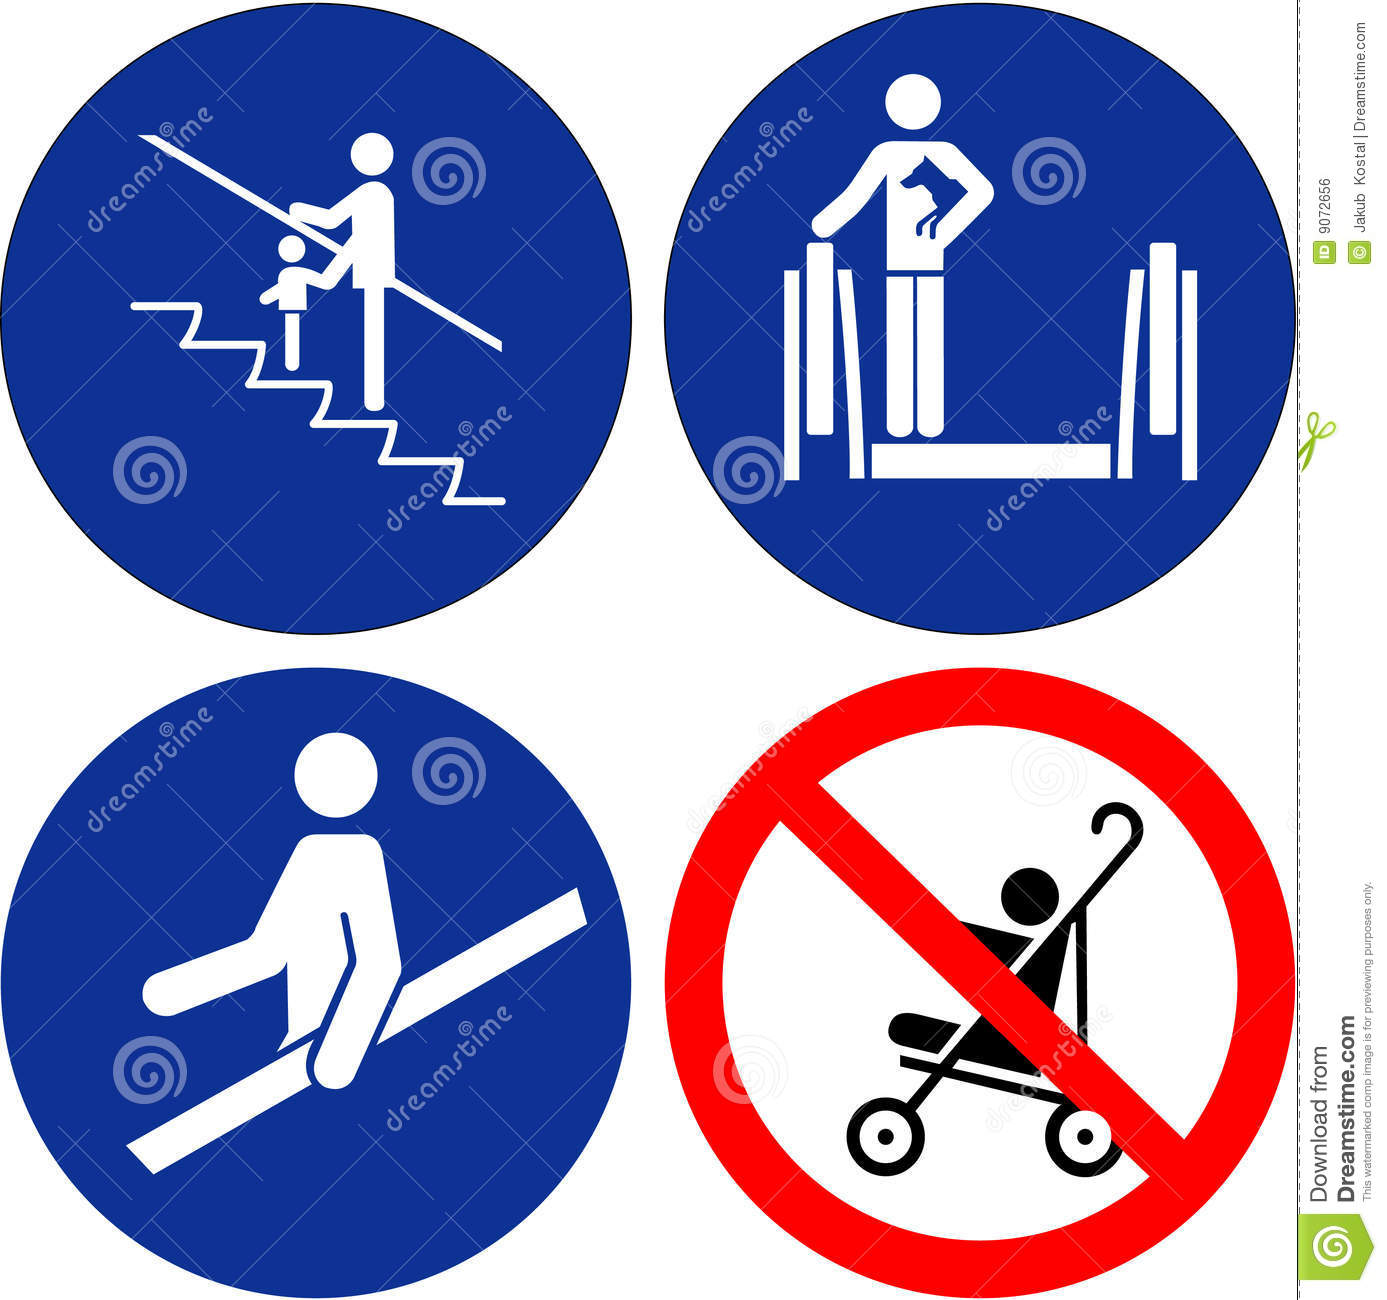 Set Of Safety Symbols Royalty Free Stock Image - Image: 9072656